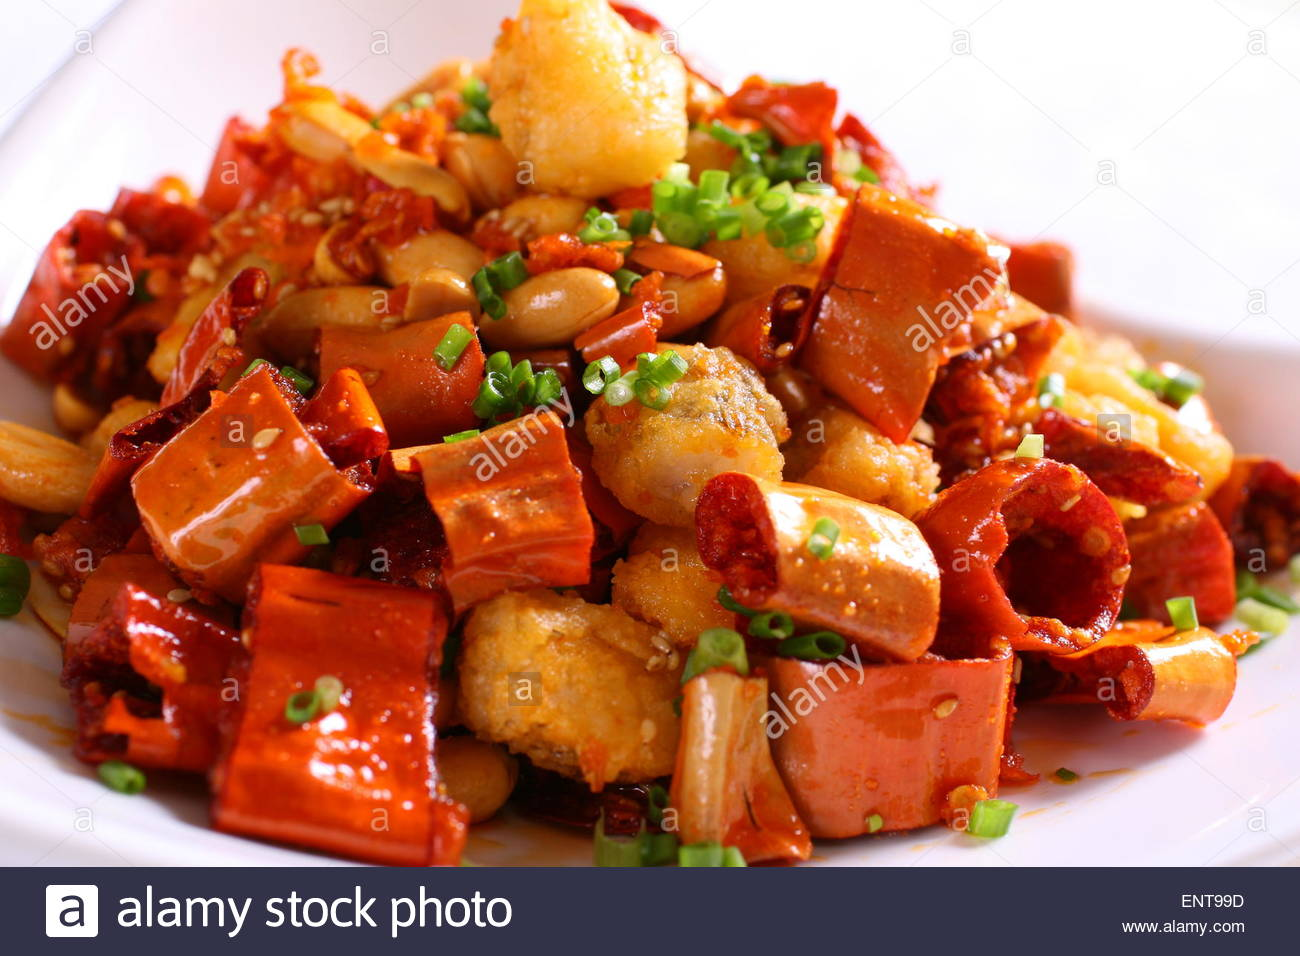 Brittleness chili nine fish belly - Stock Image